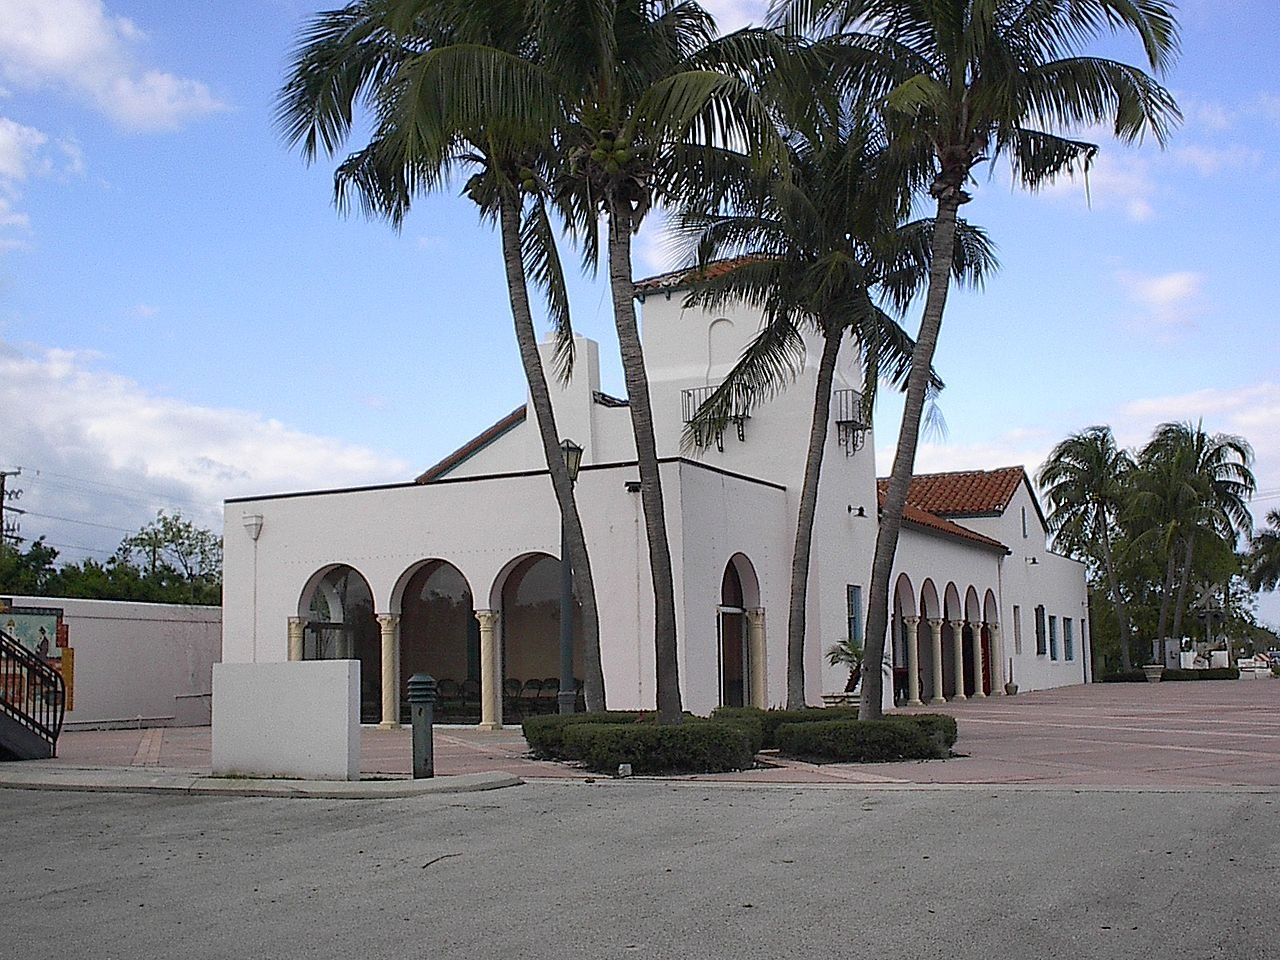 The Florida East Railway Depot was built in 1930 and today is the Boca Express Train Museum.